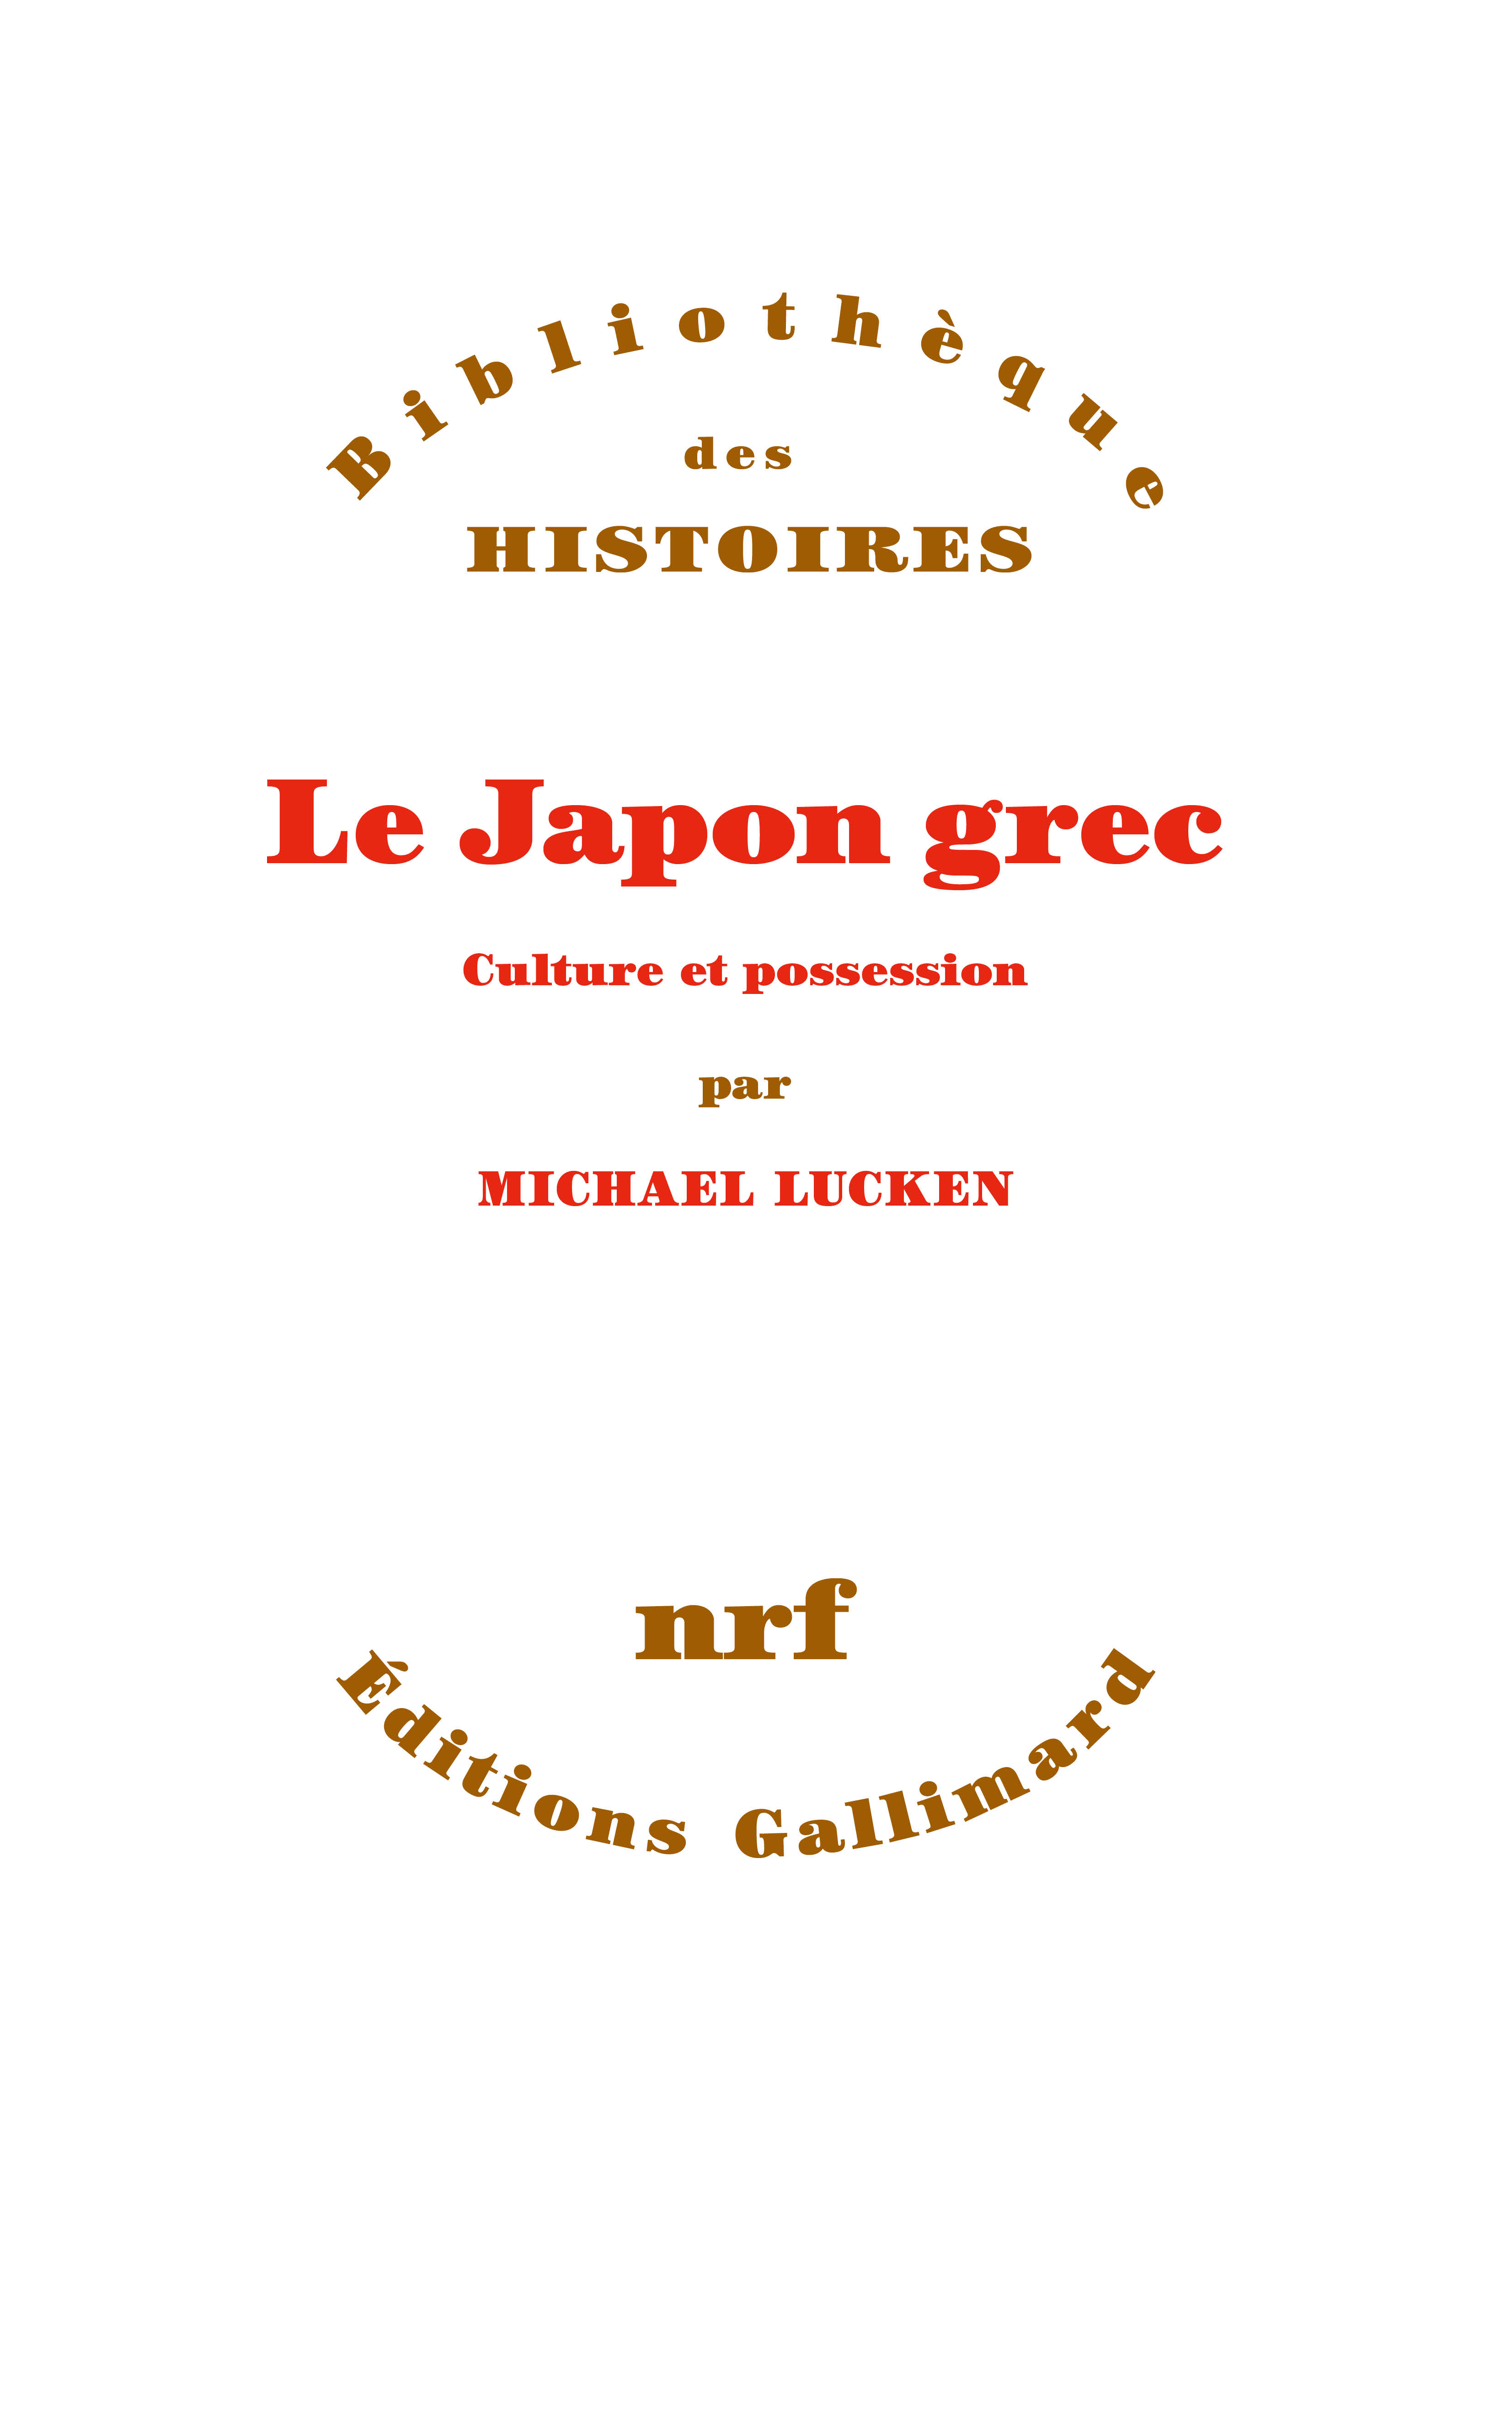 M. Lucken, Le Japon grec. Culture et soumission